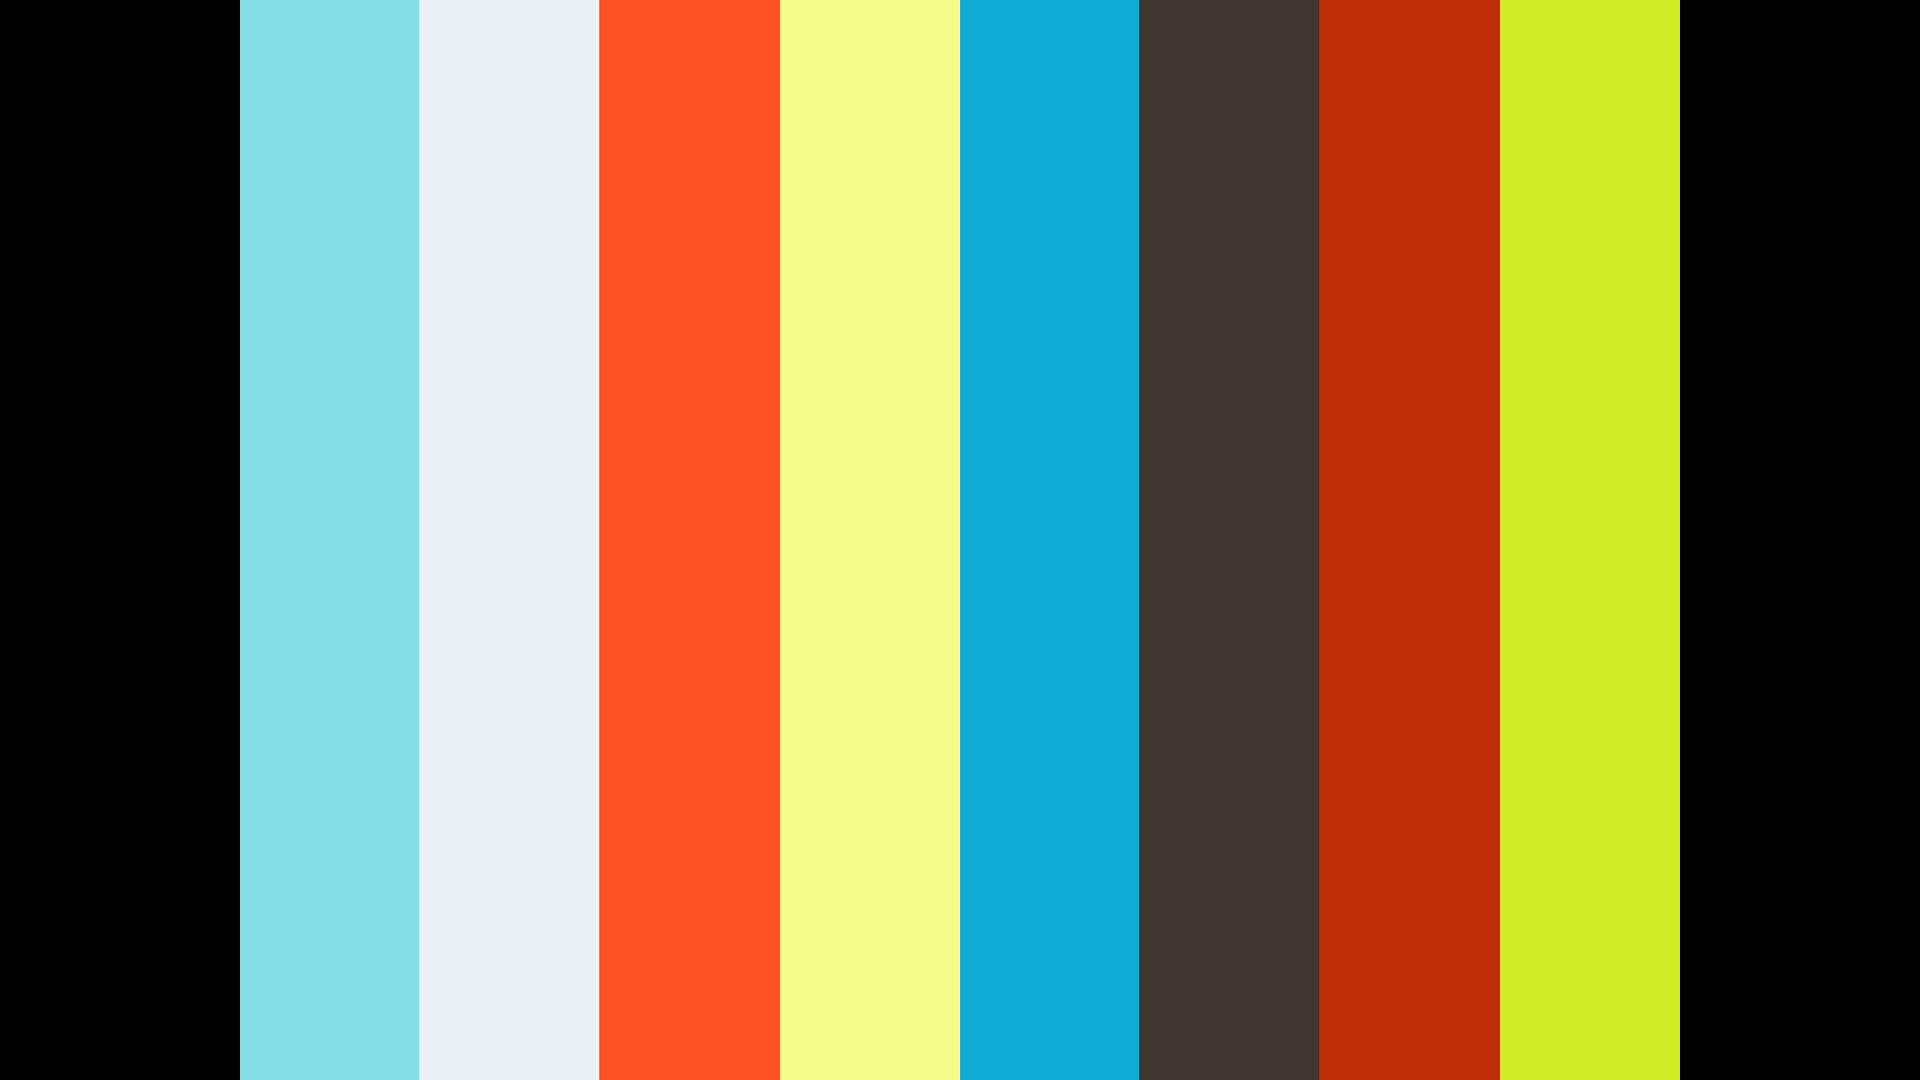 Four Calls You Should Take Part 2 (September 11 2019)